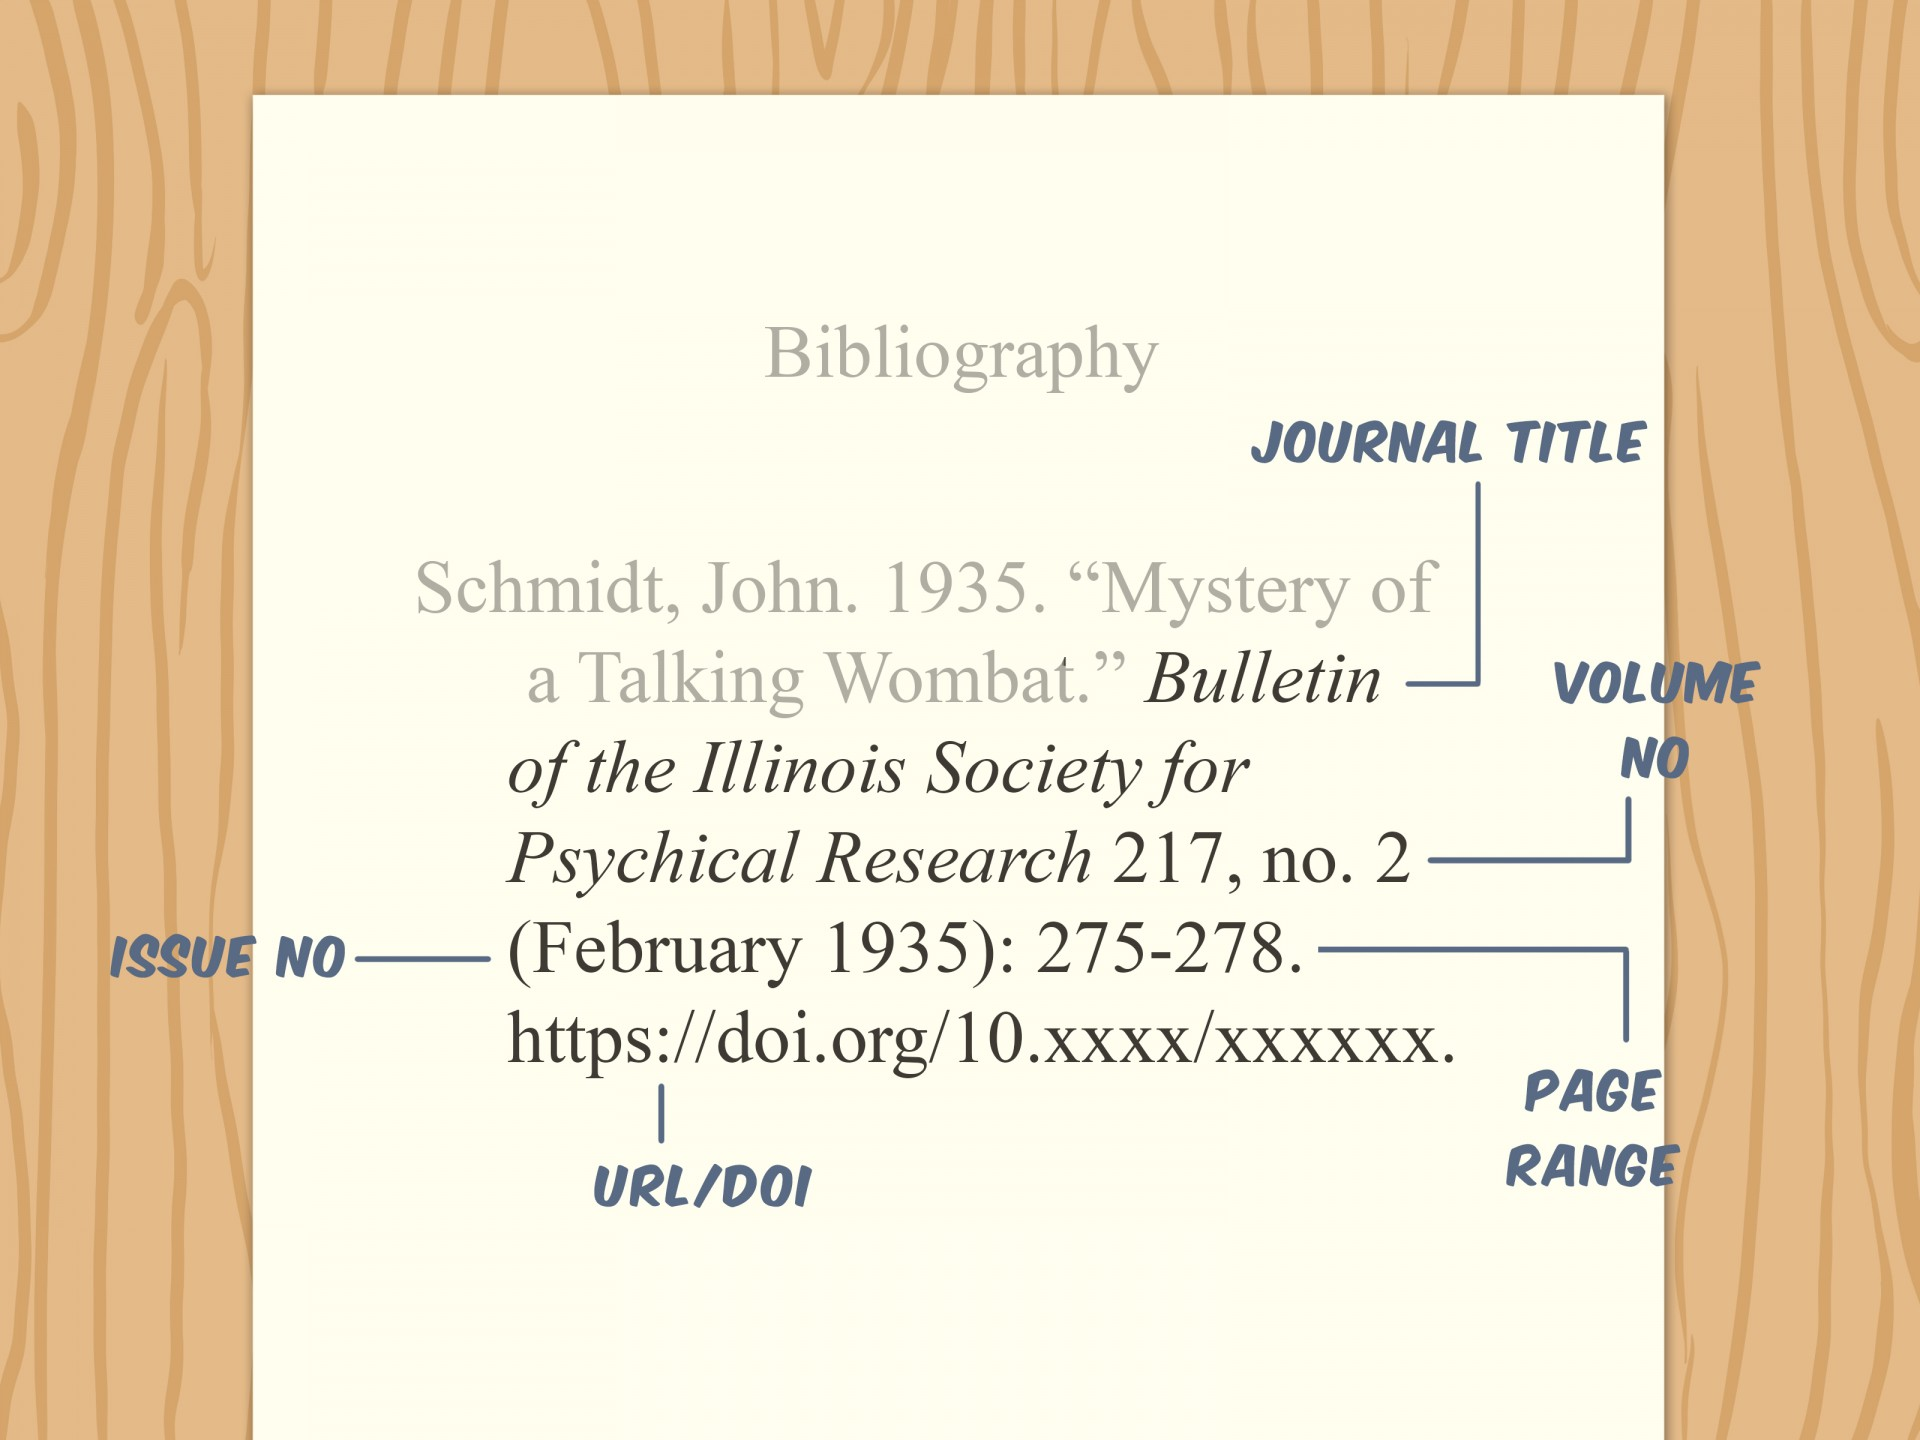 018 Citing Research Paper Chicago Style Cite Sources In Manual Of Format Step Version Remarkable 1920